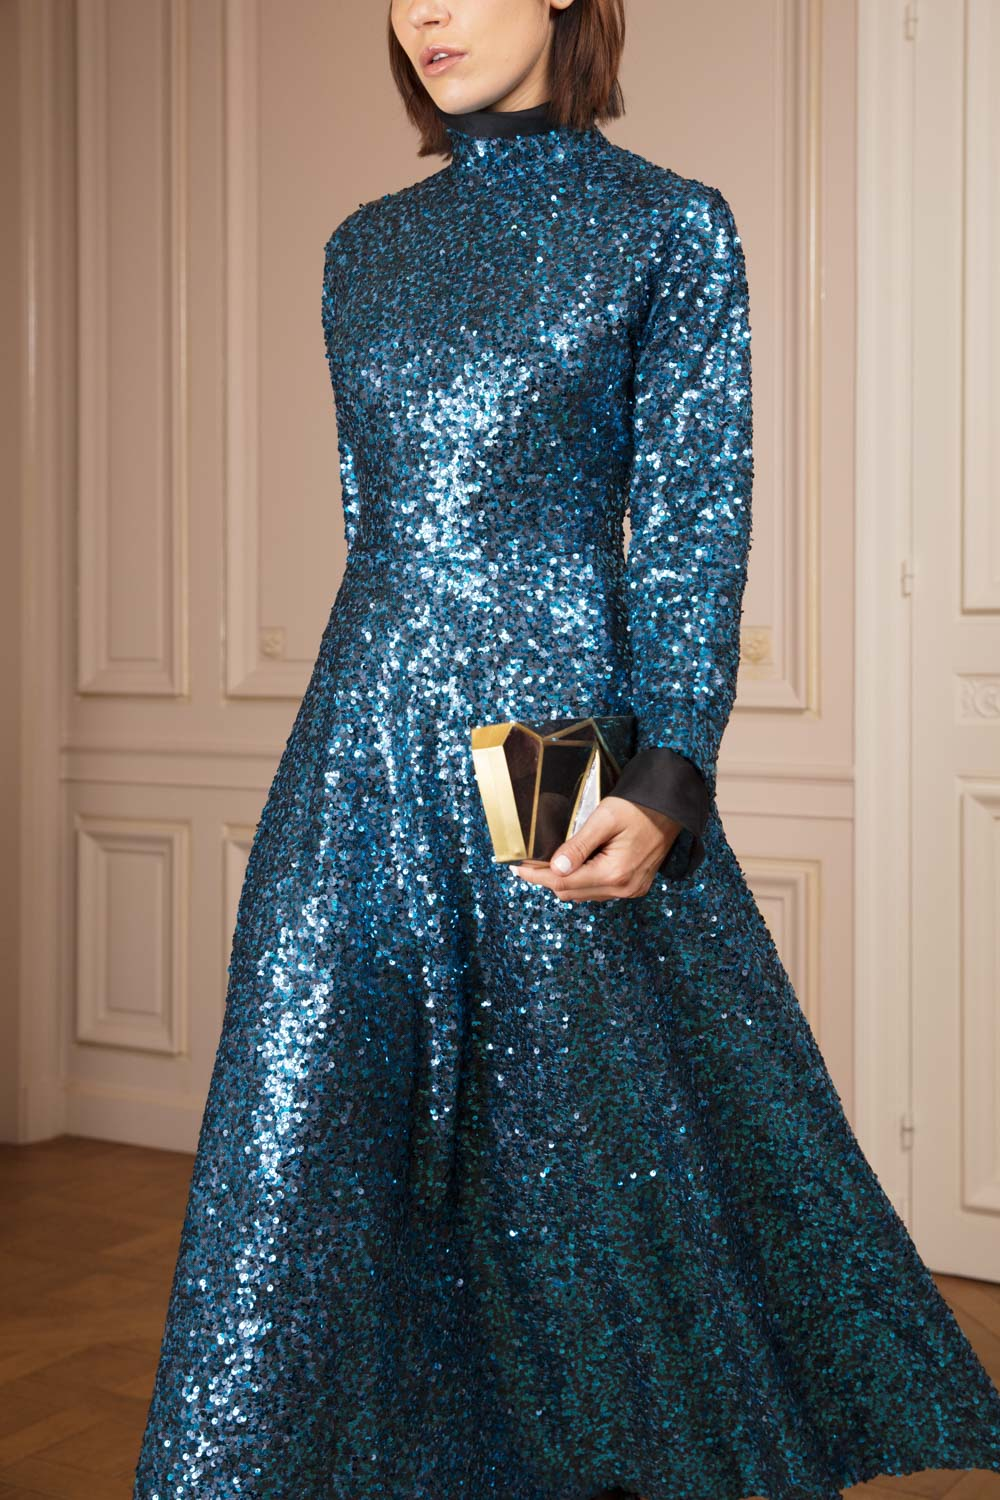 Petrol blue sequined fit-and-flare midi dress